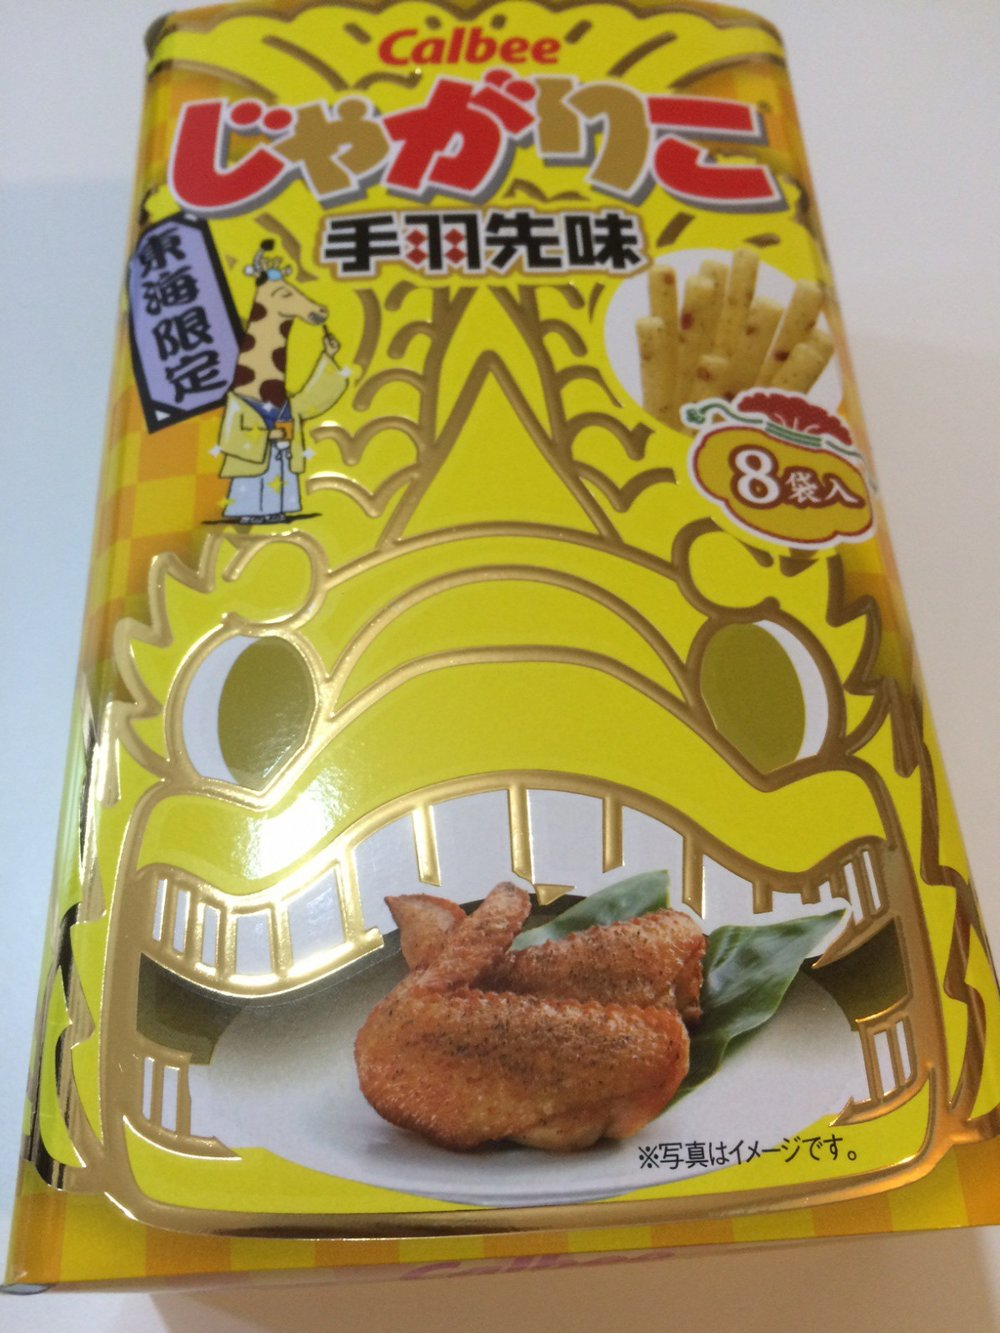 Source:   Enjoy Snacks in Japan  (my photo is too dark to be published here)